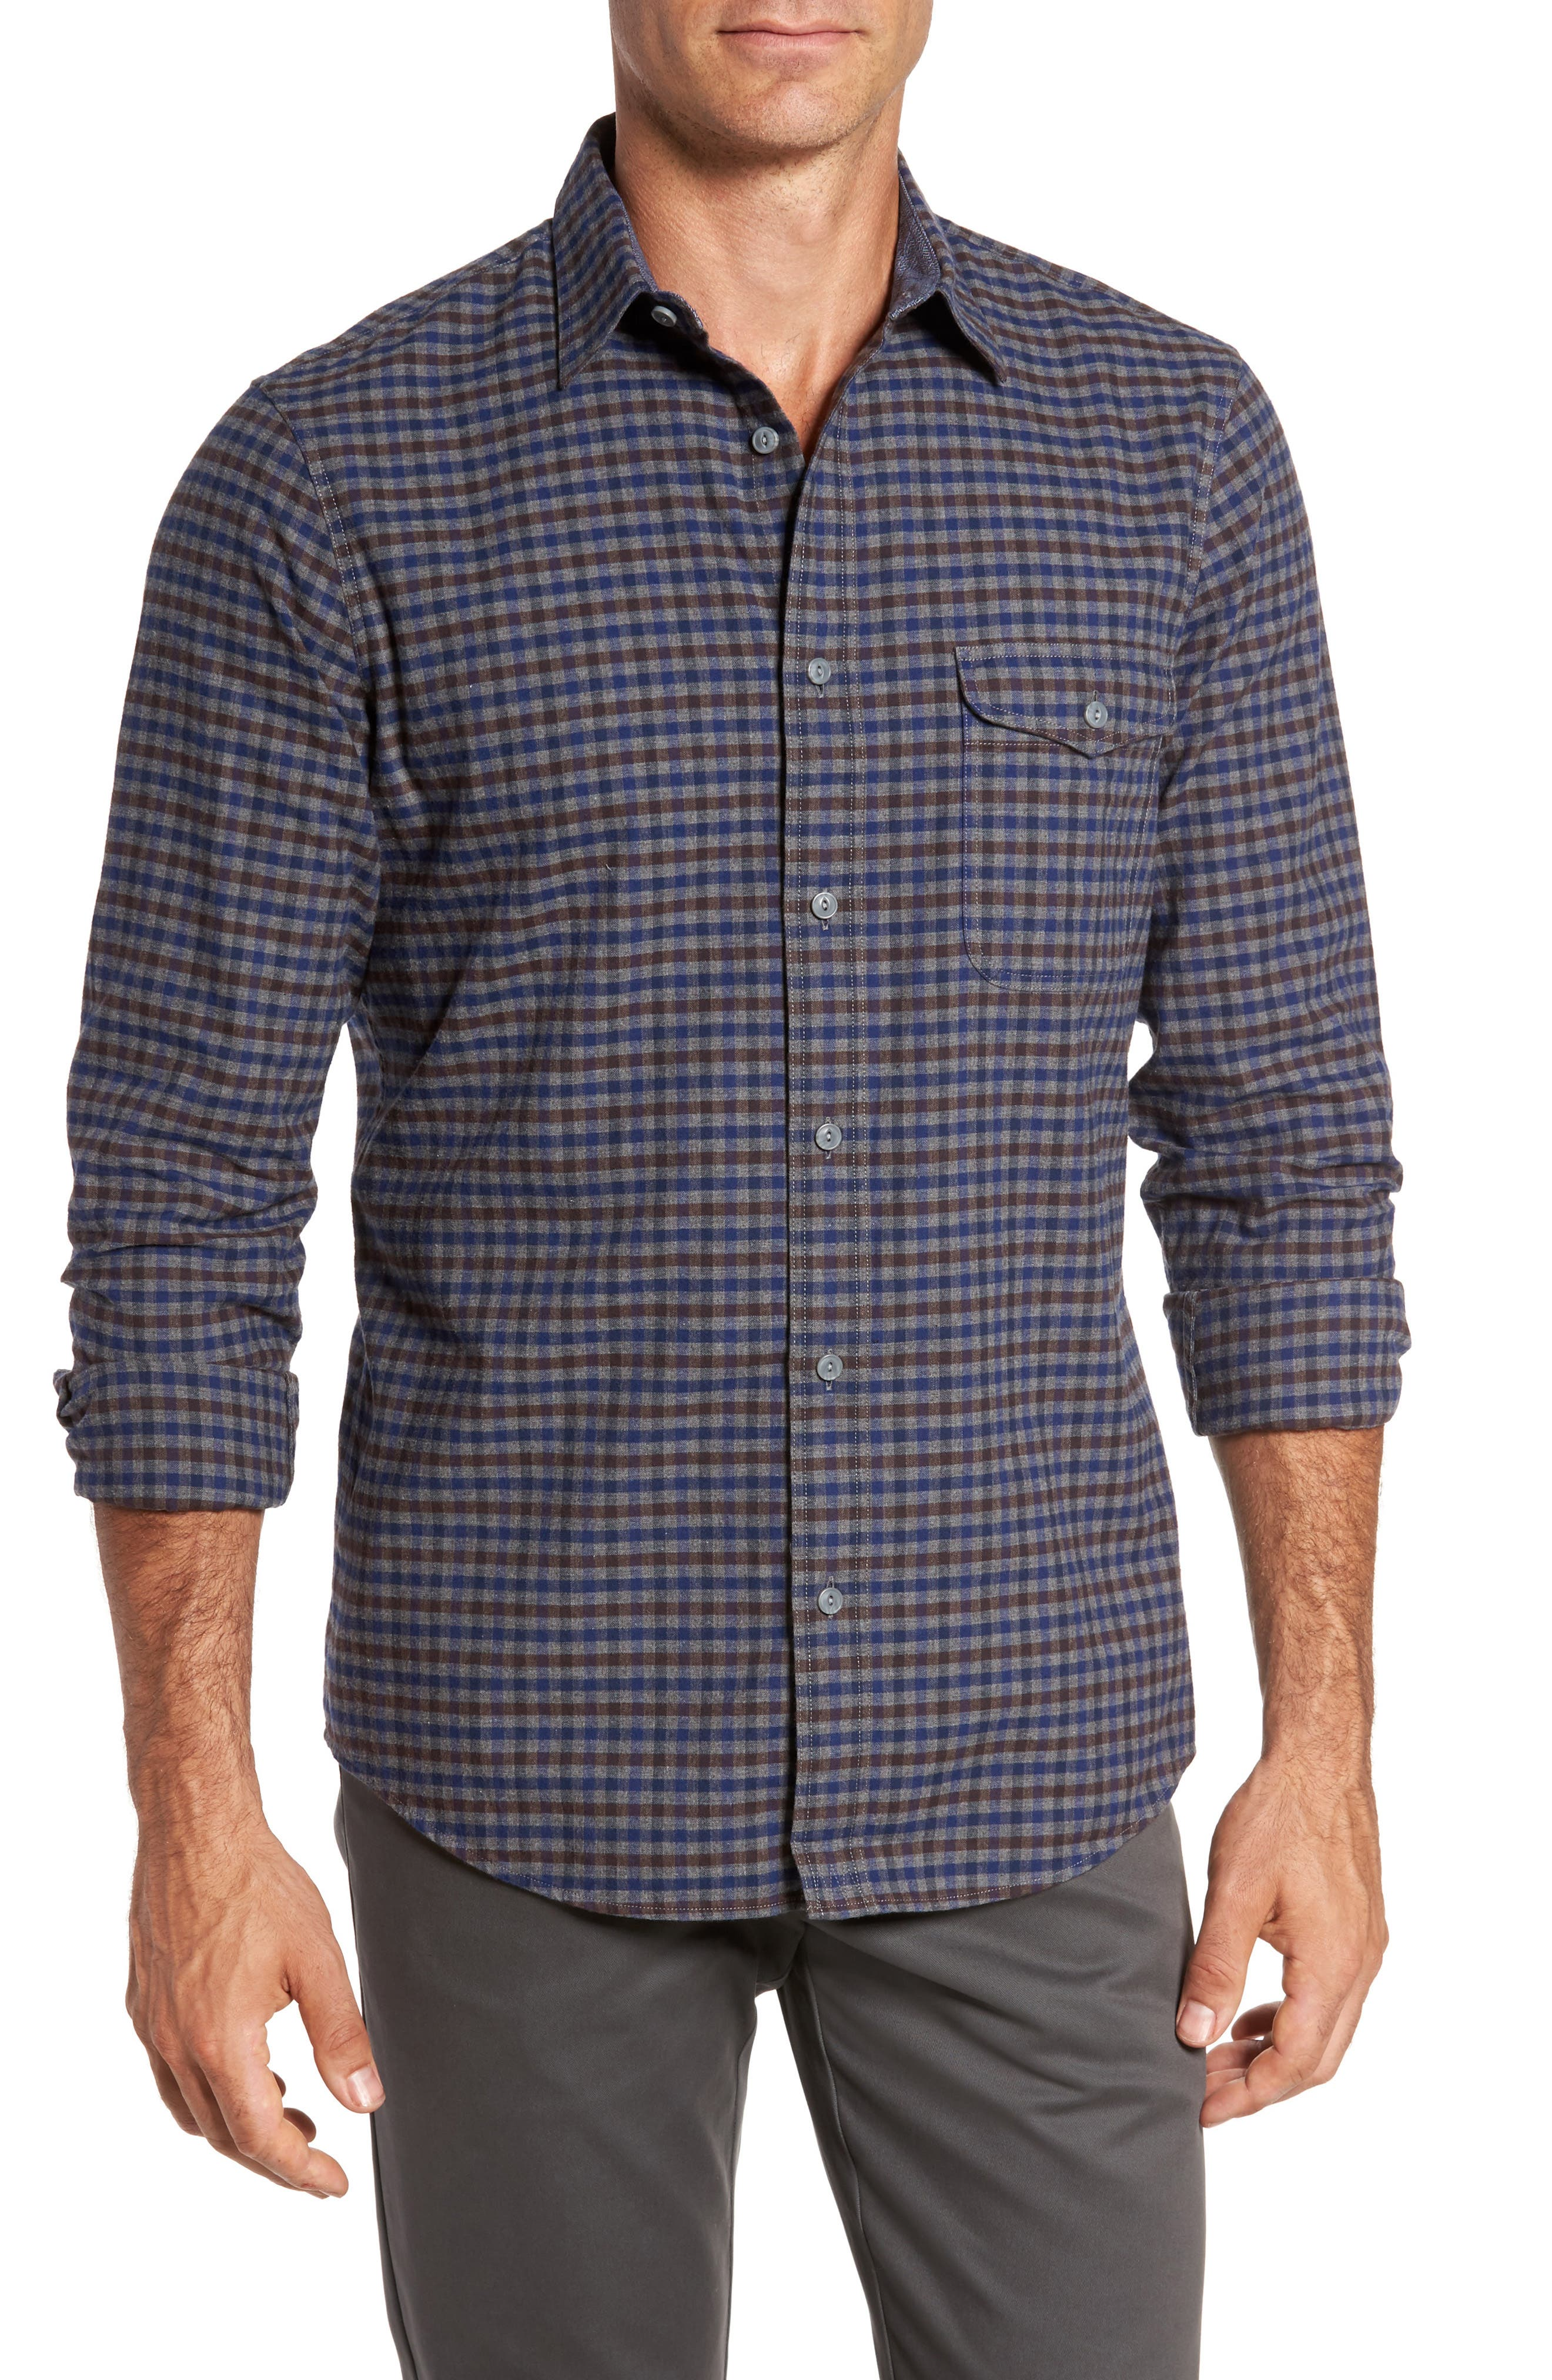 Regular Fit Lumber Check Flannel Shirt,                         Main,                         color, Grey Shade Brown Check